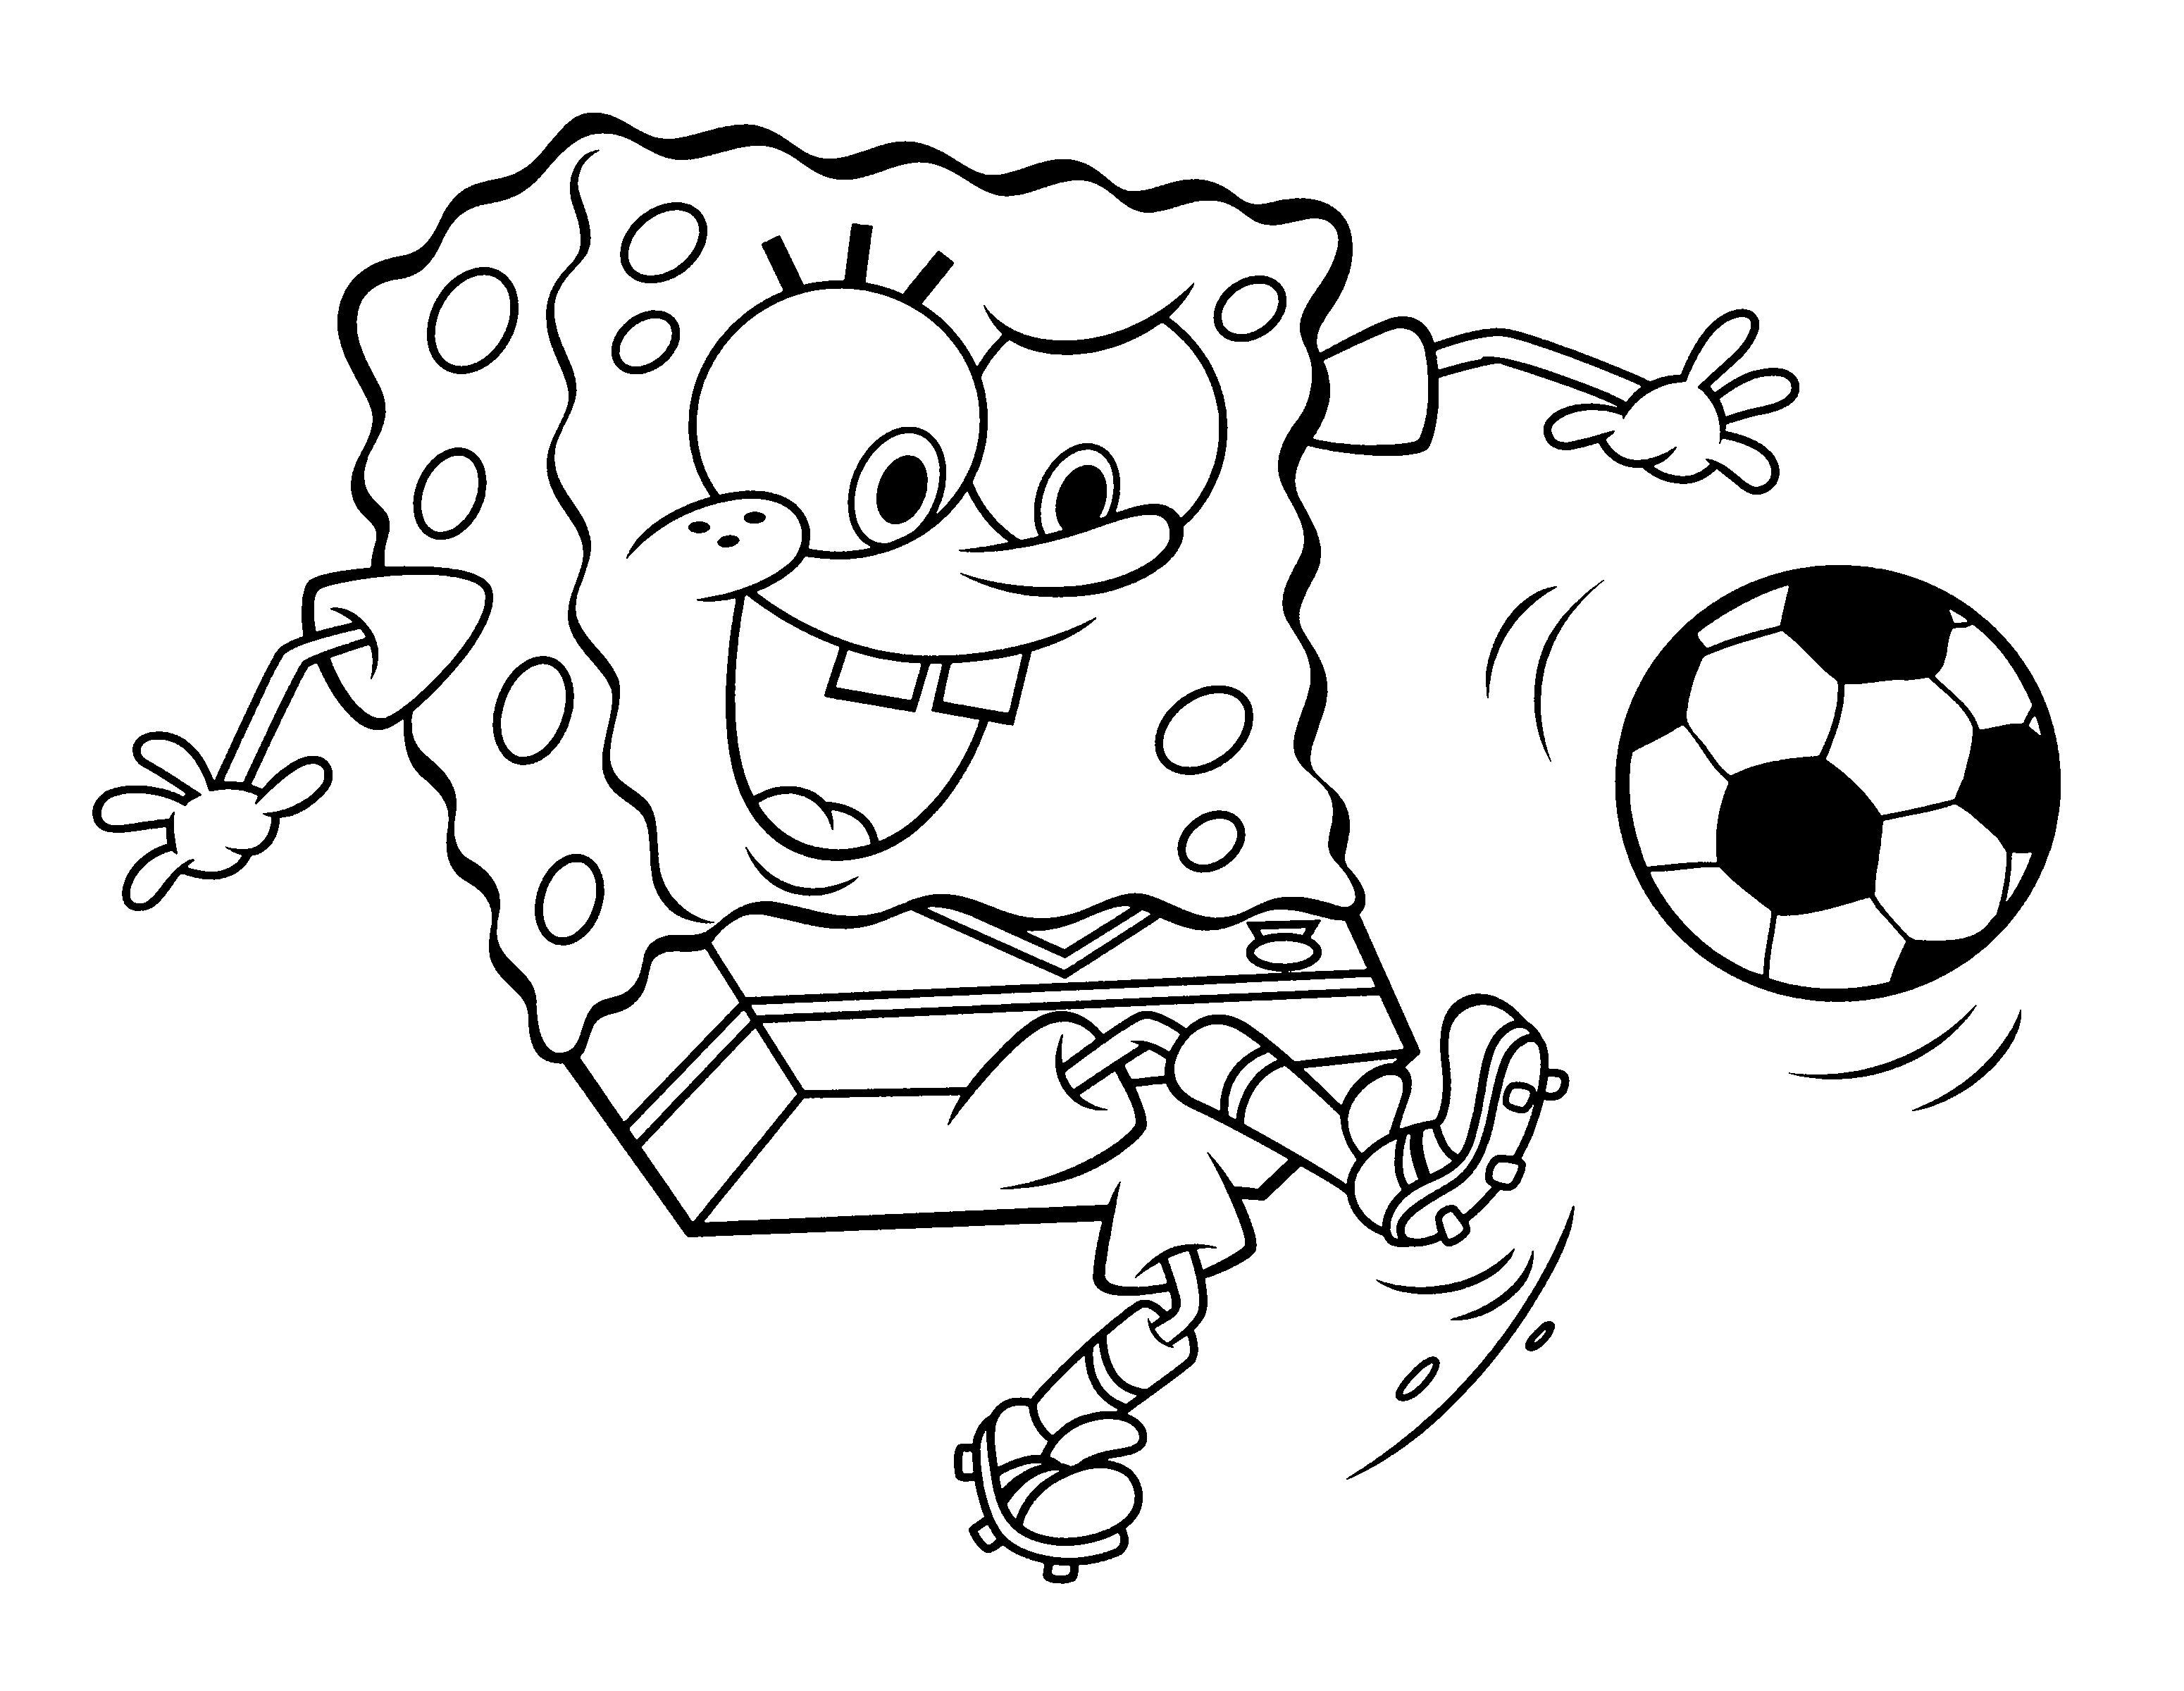 spongebob playing football coloring pages for kids sp printable